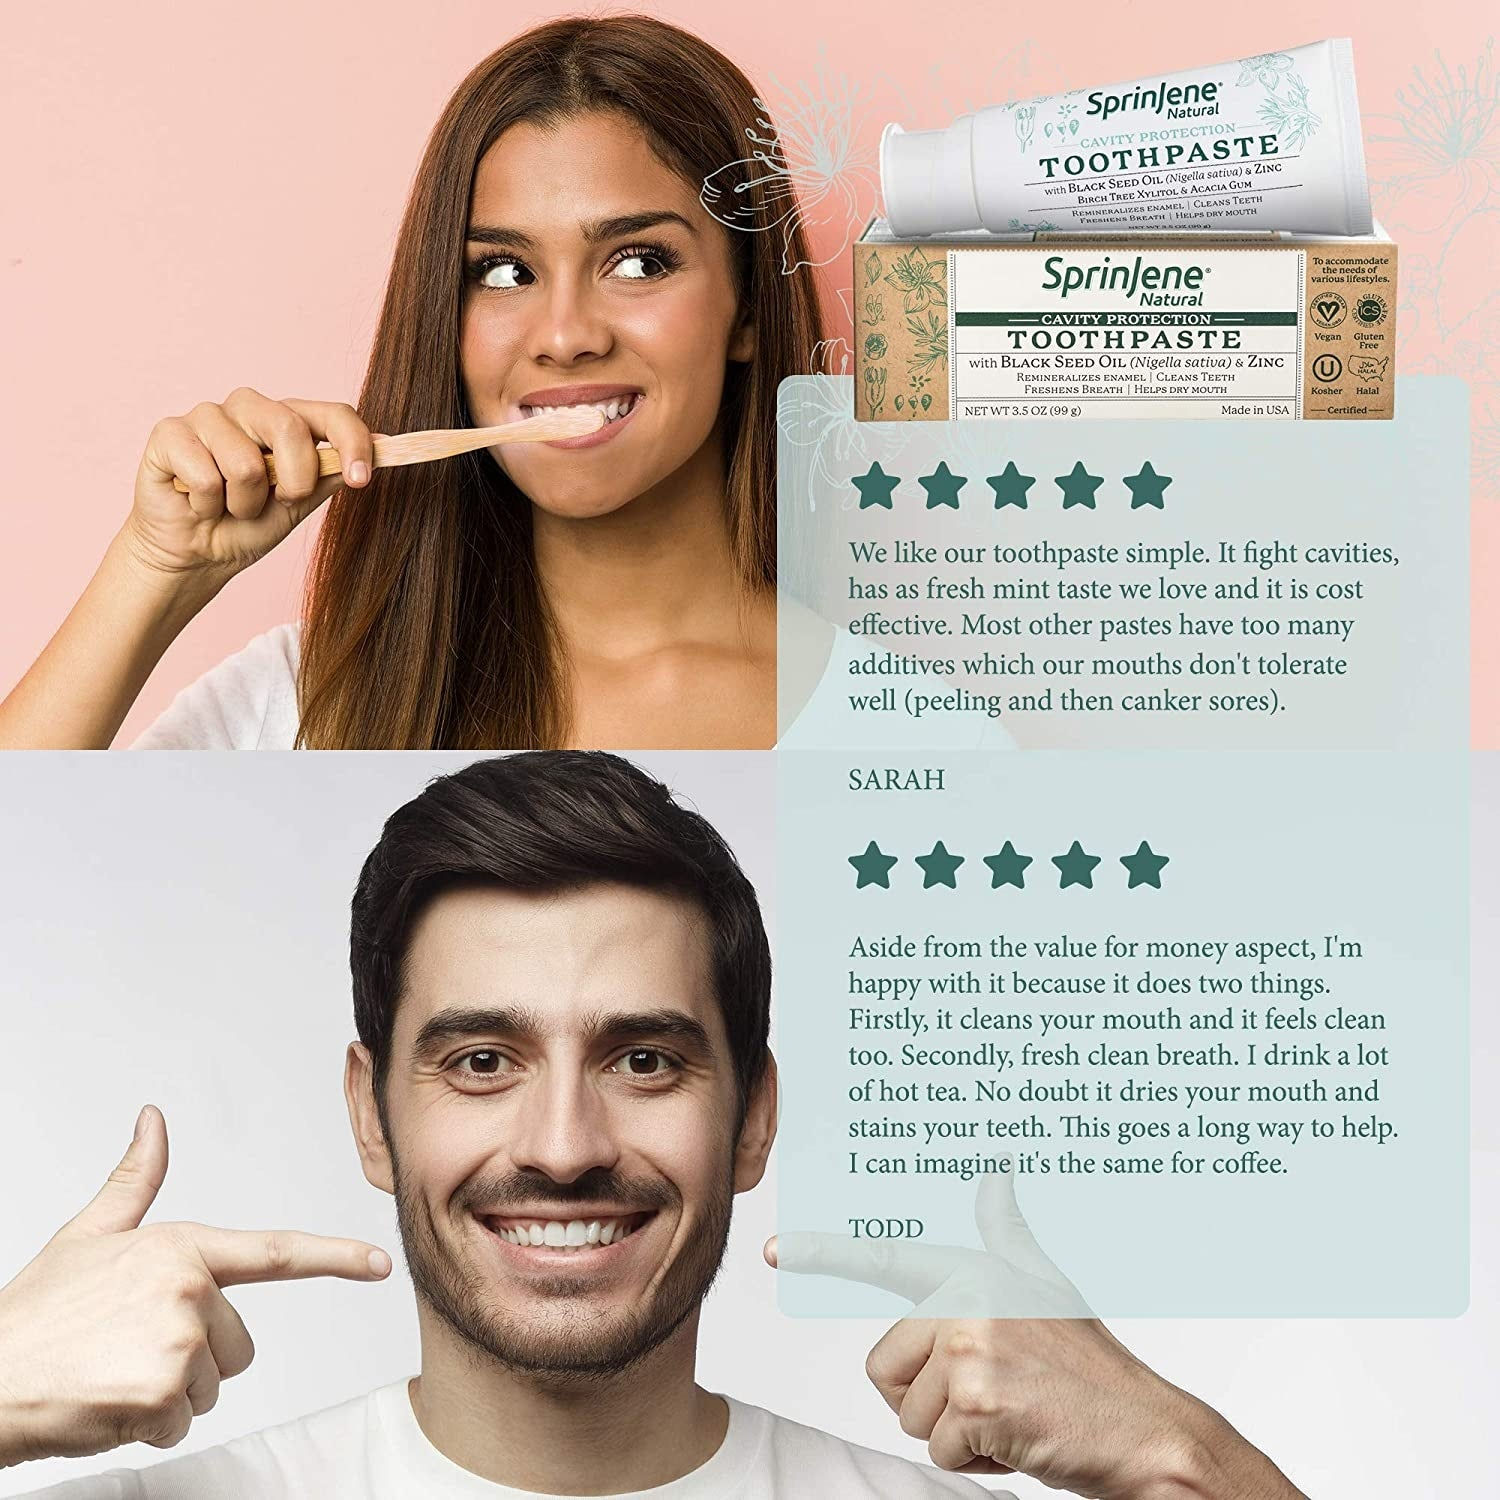 SprinJene Toothpaste product reviews